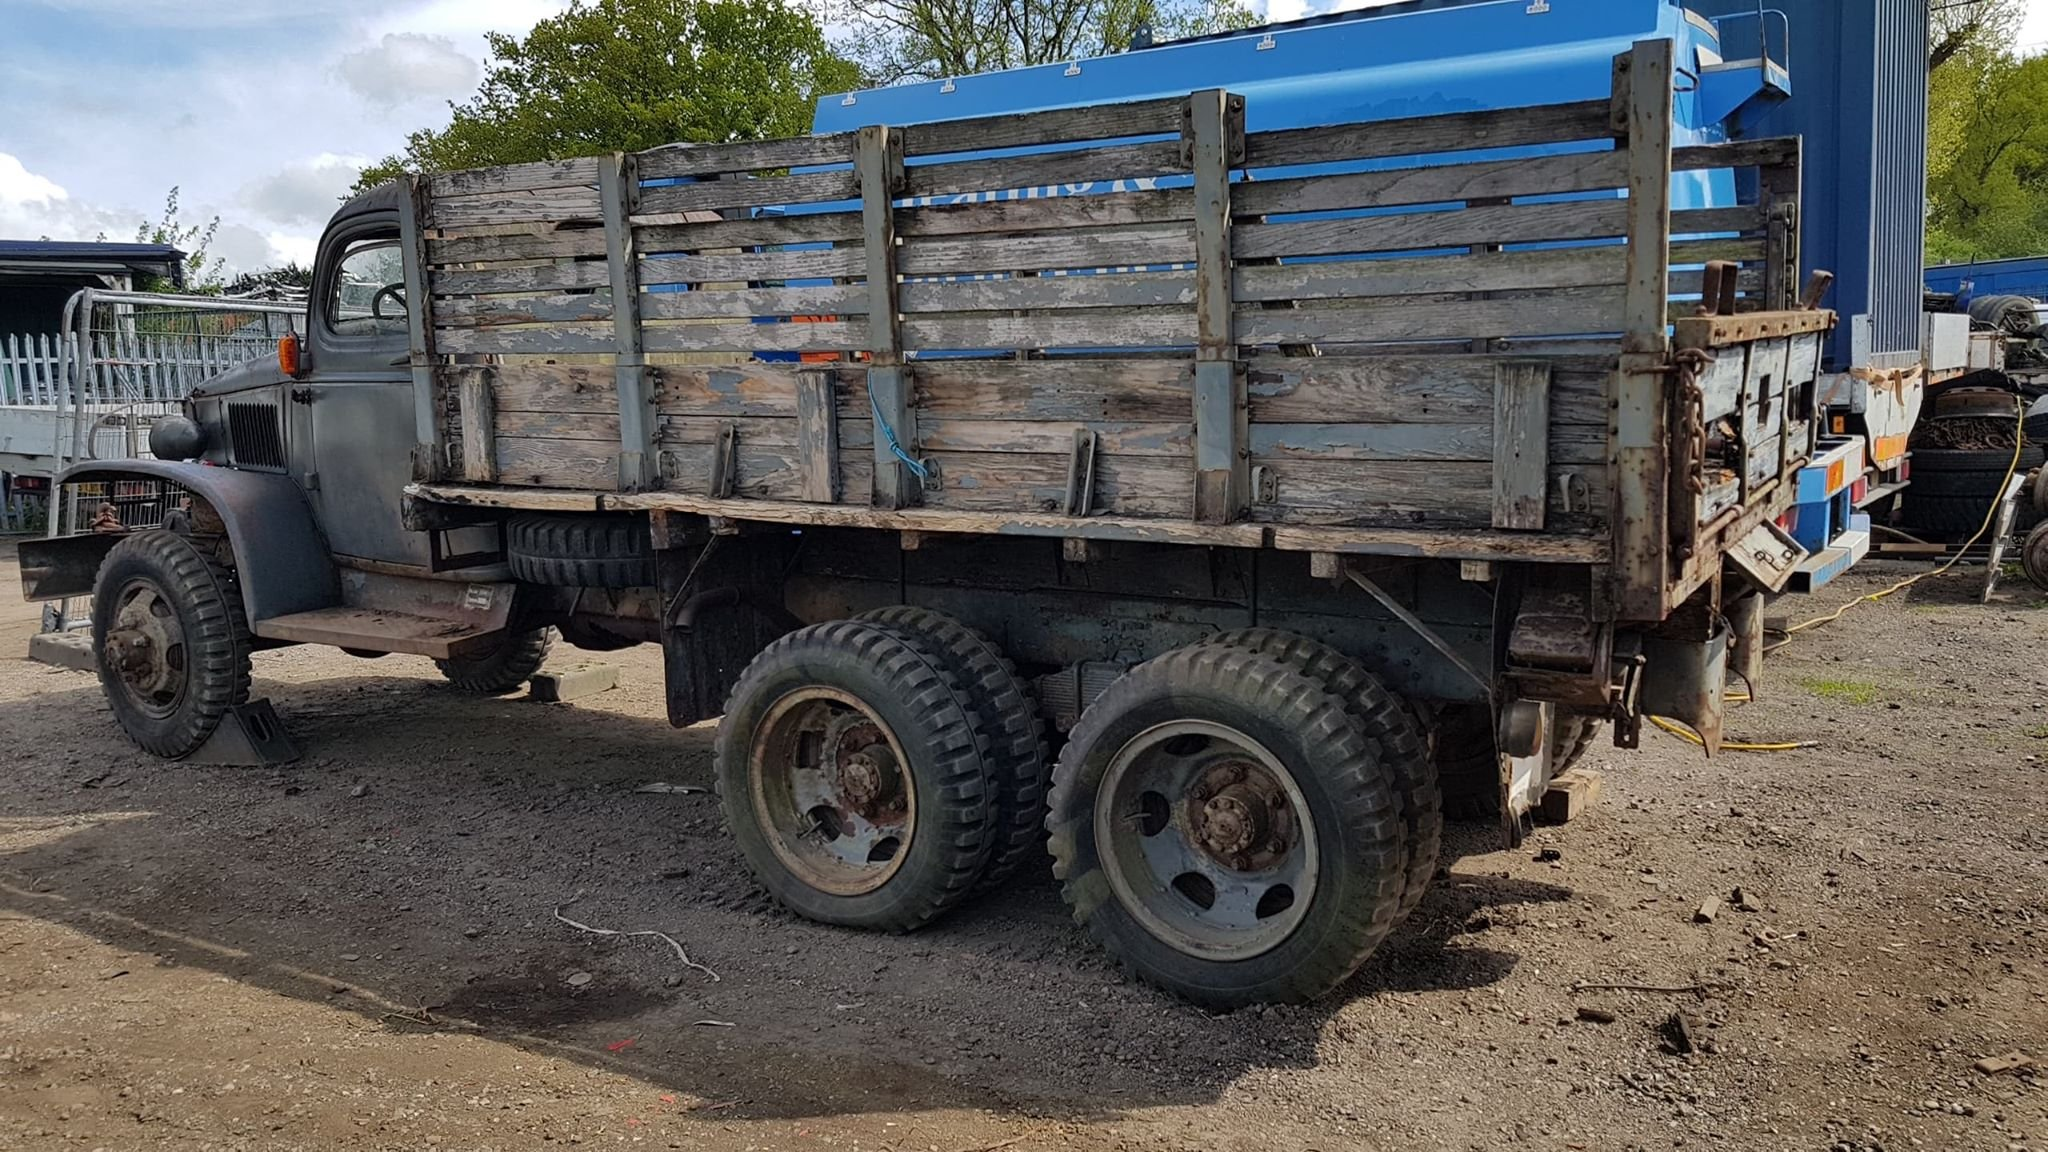 GMC CCKW 1944 hardcab winch truck  For Sale (picture 2 of 3)